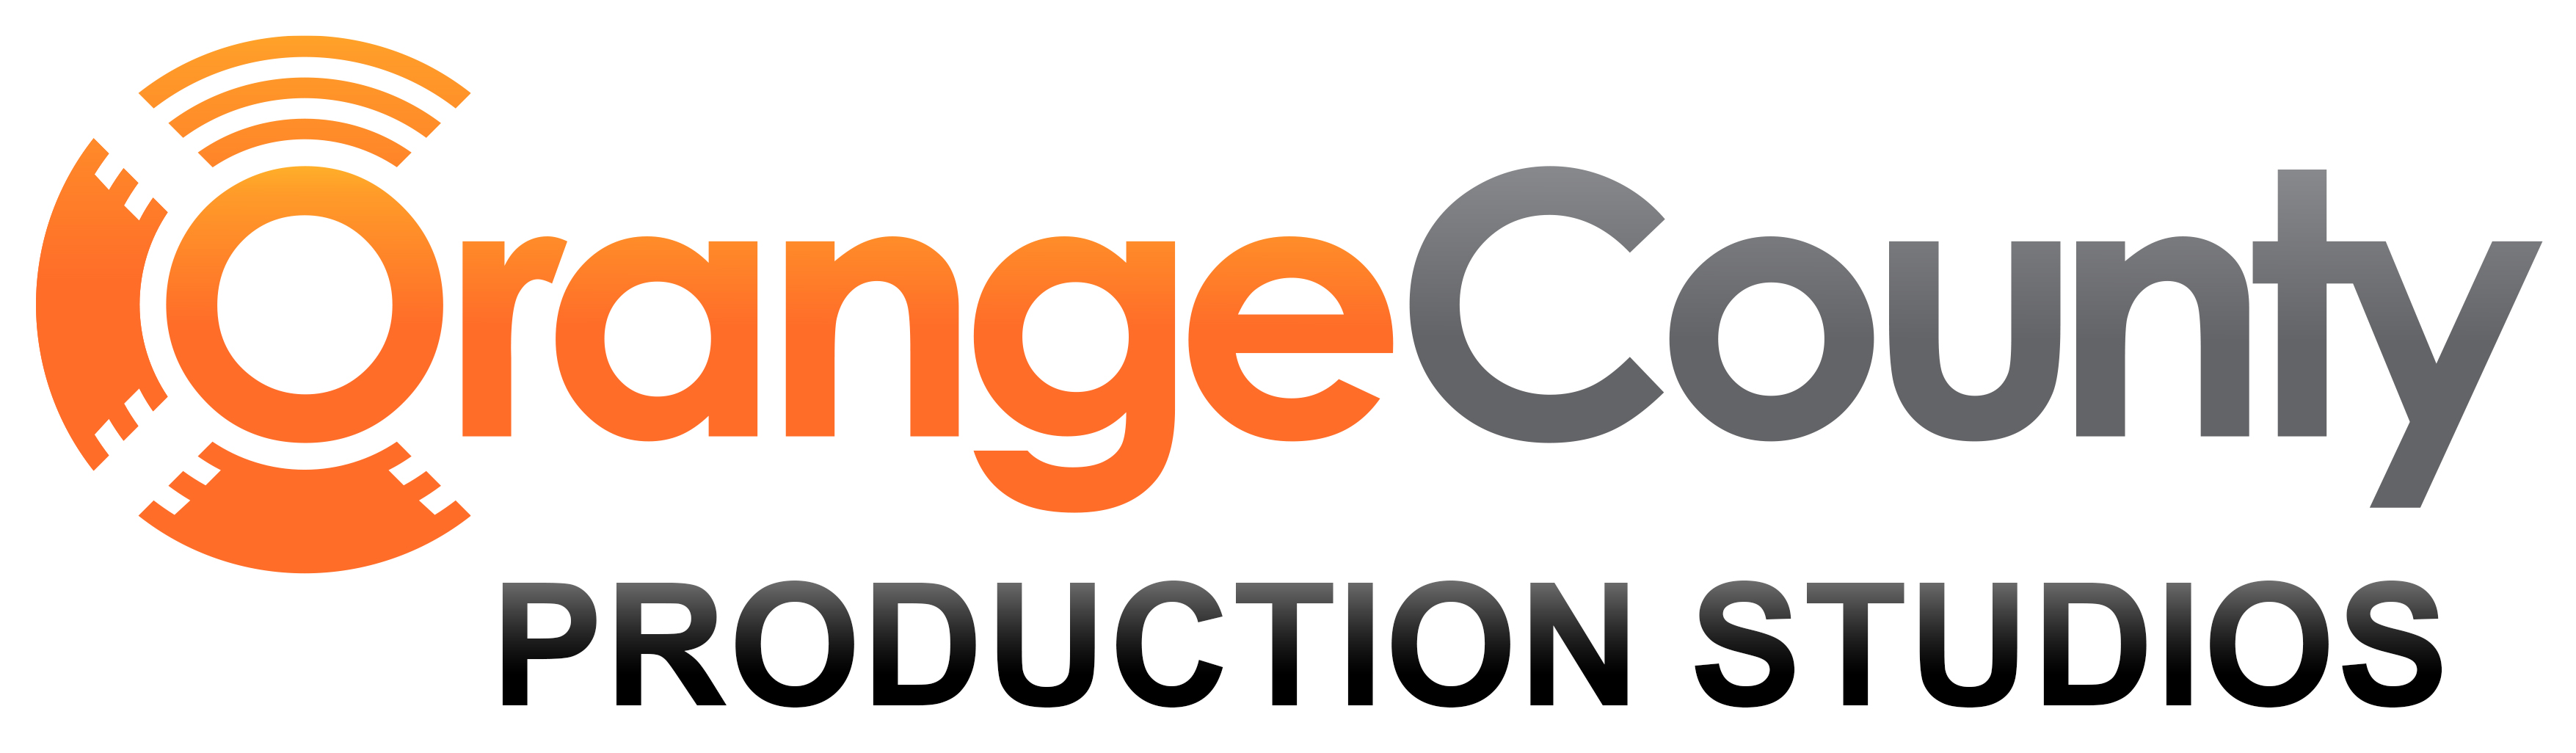 Orange County Production Studios